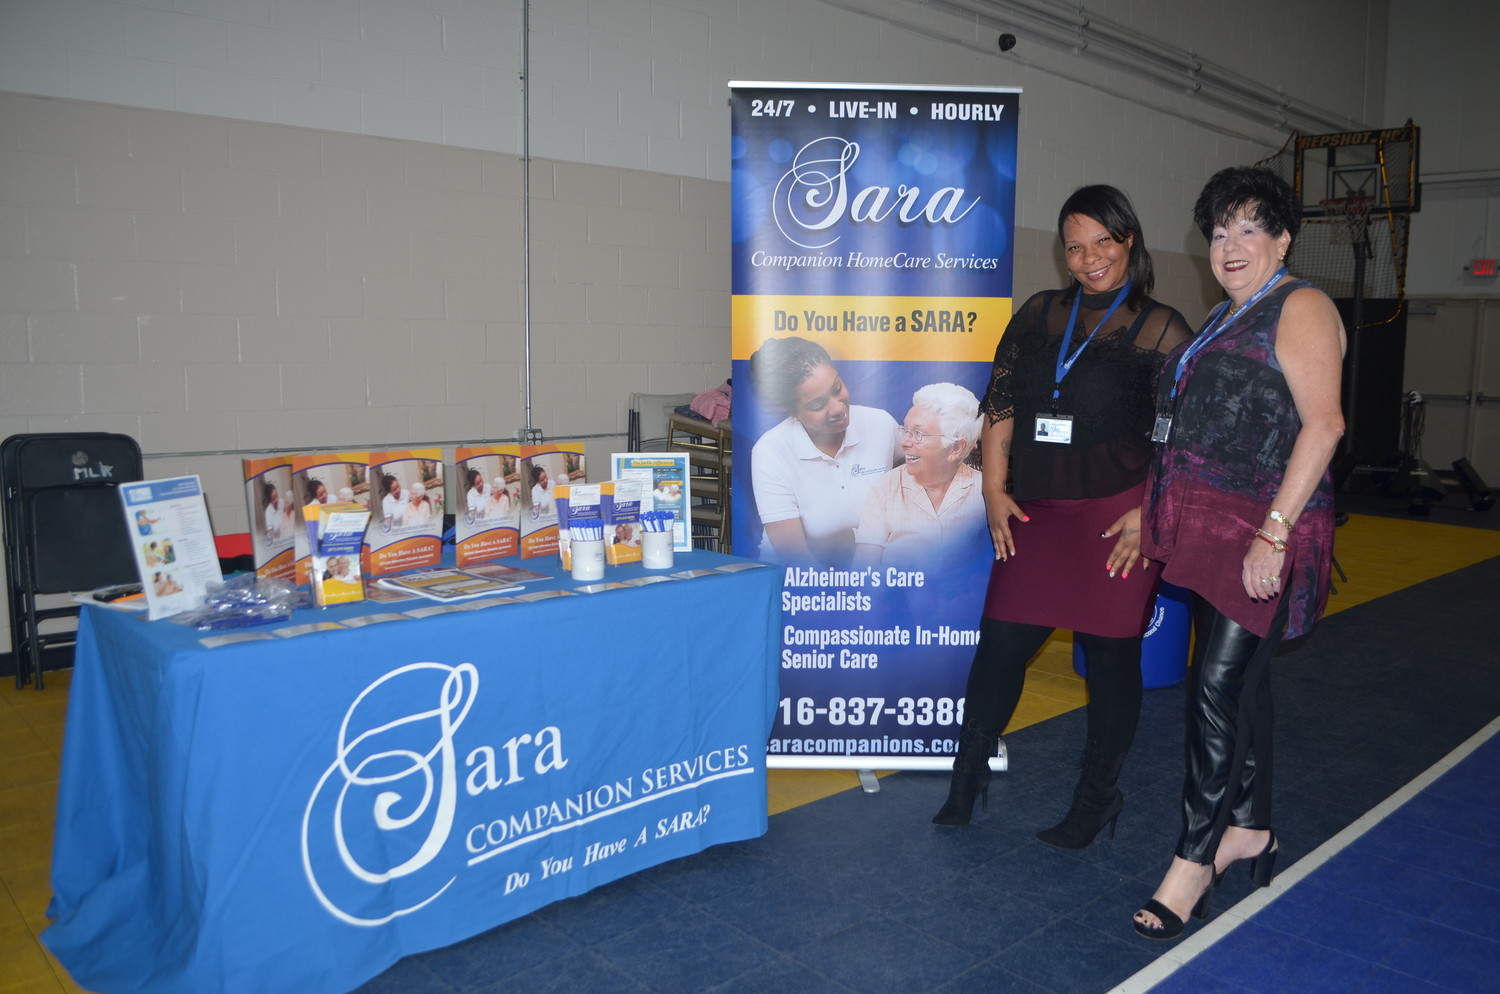 Sernomia Gay, a service coordinator for Sara HomeCare Services, left, and Roberta Lulov, a senior home care coordinator, presented information at the event about services they provide to elderly or disabled clients.